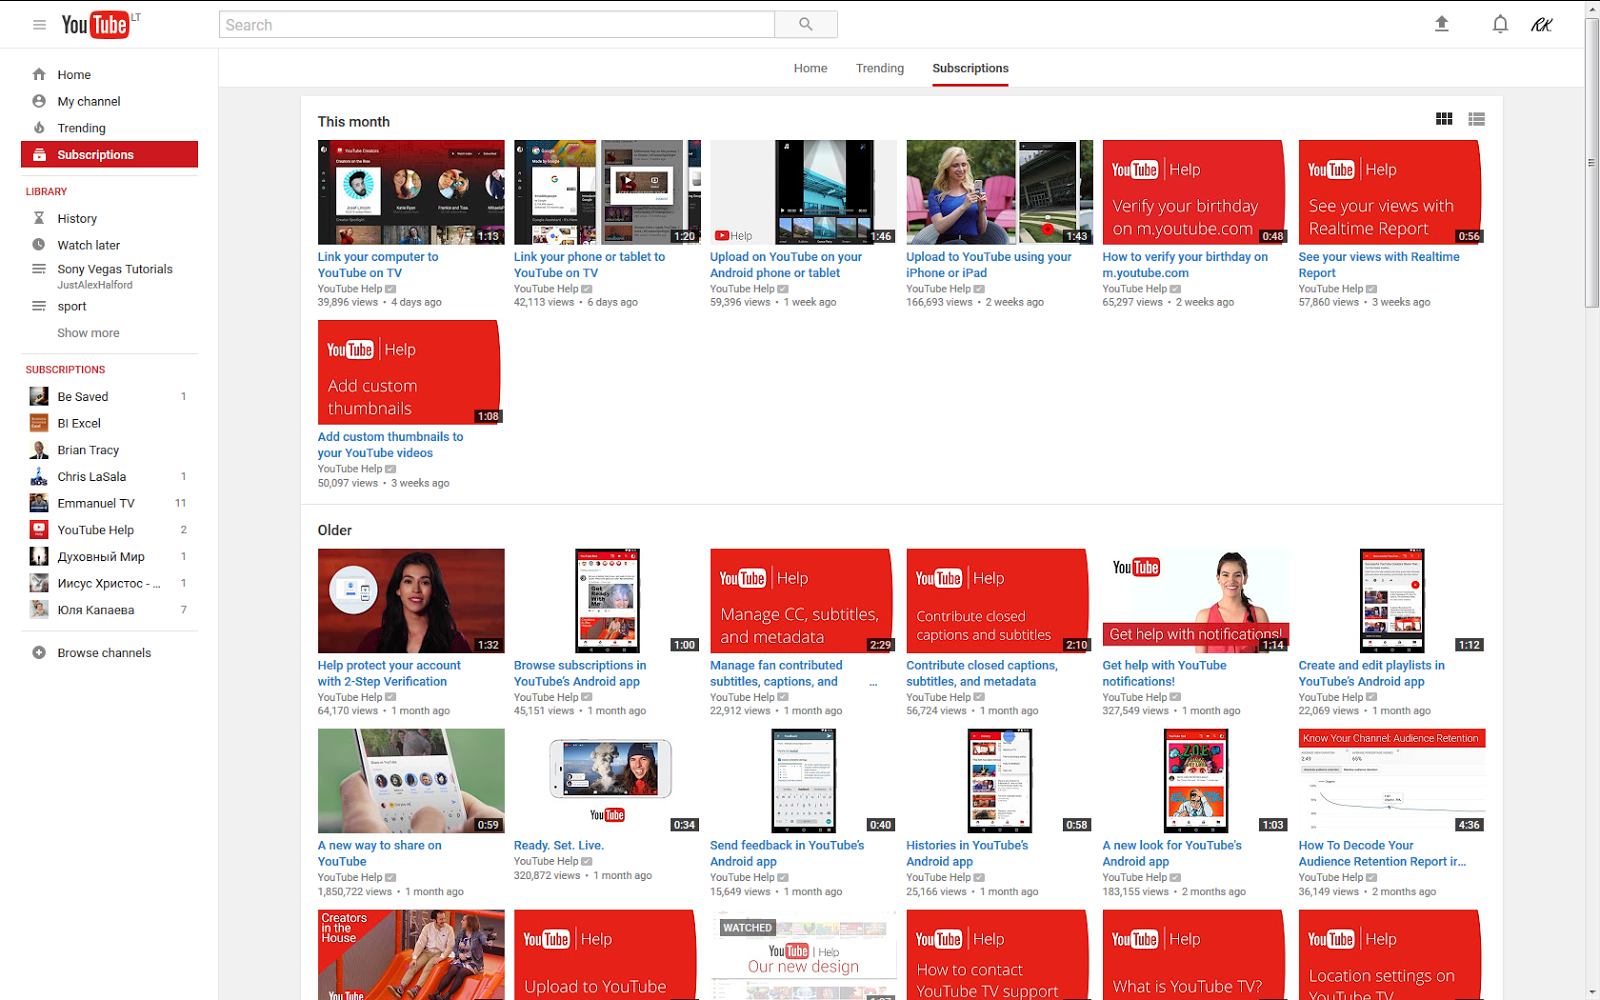 YouTube not showing my full subscription list - YouTube Help